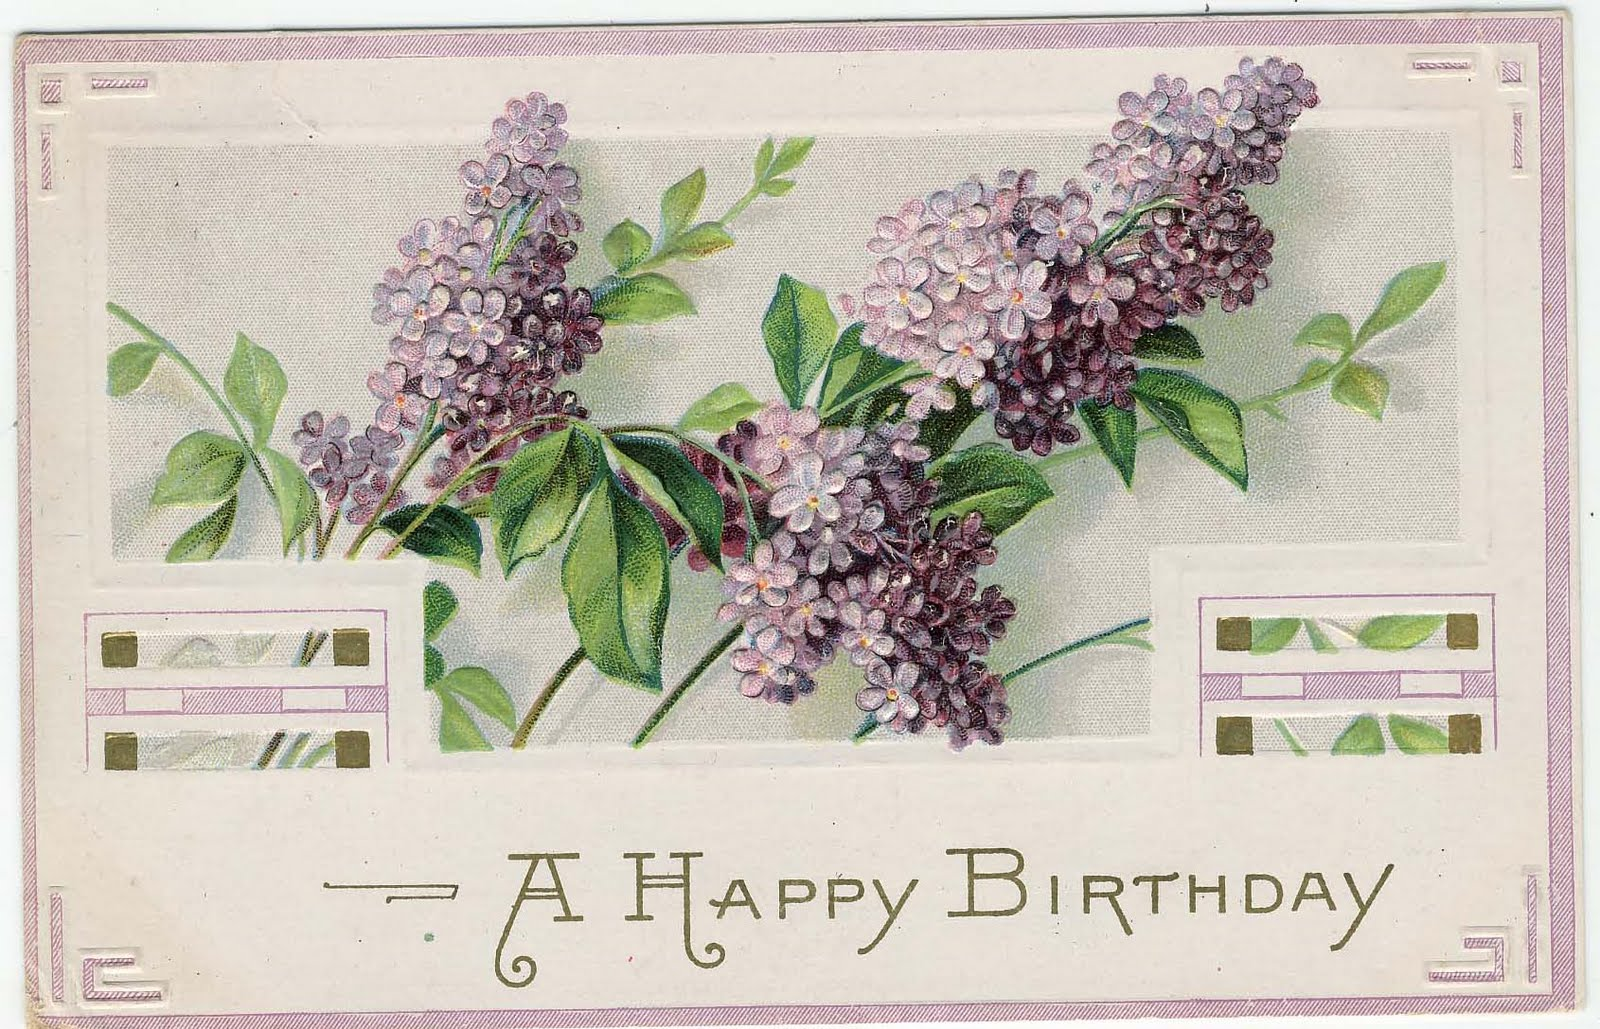 Vintage Flowers Birthday Cards ~ Vintage birthday clip art free vintage birthday card scroll with